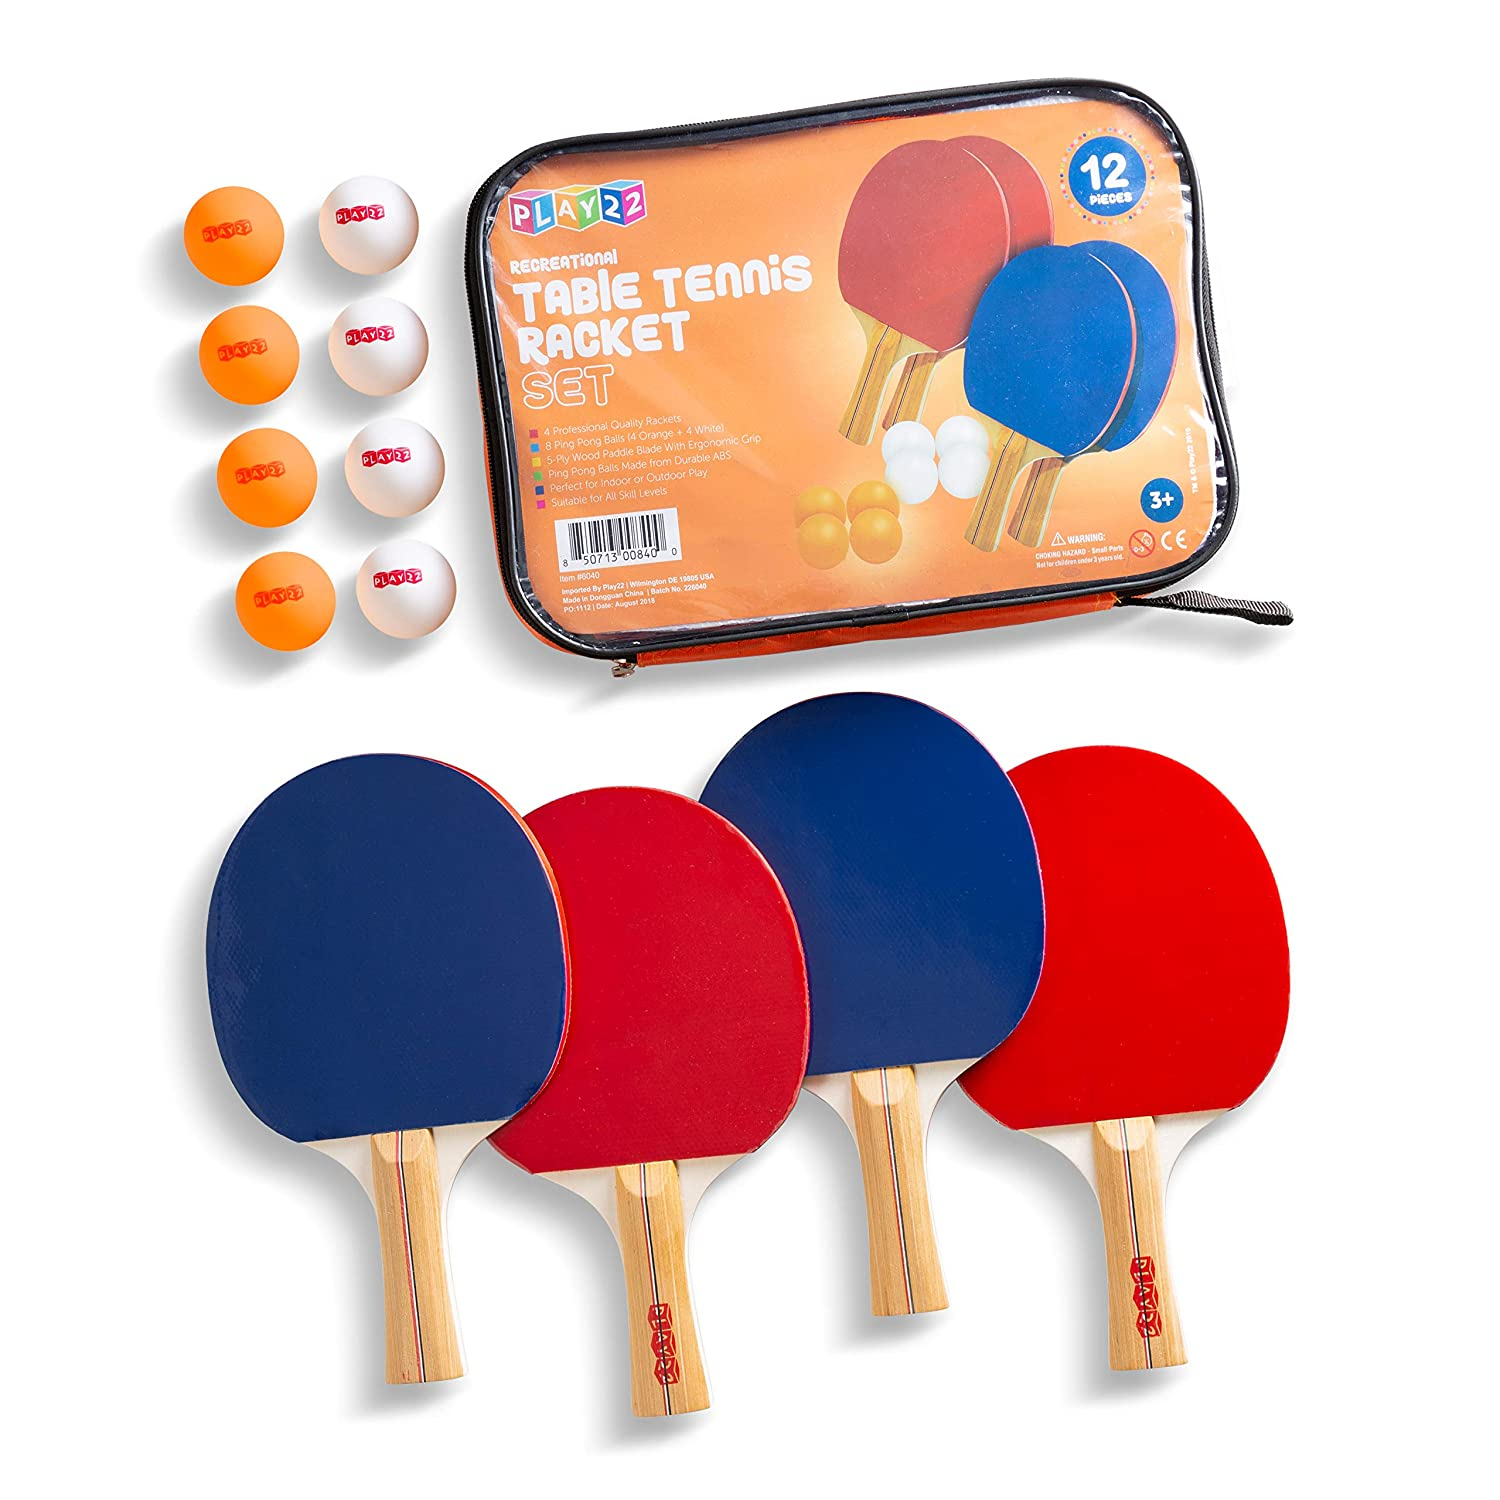 Play22 Ping Pong Paddle Set - 4 Table Tennis Paddles and 8 Ping Pong Balls and Portable Gift Case - Best Gift for Boys and Girls, Adults - Great for ...